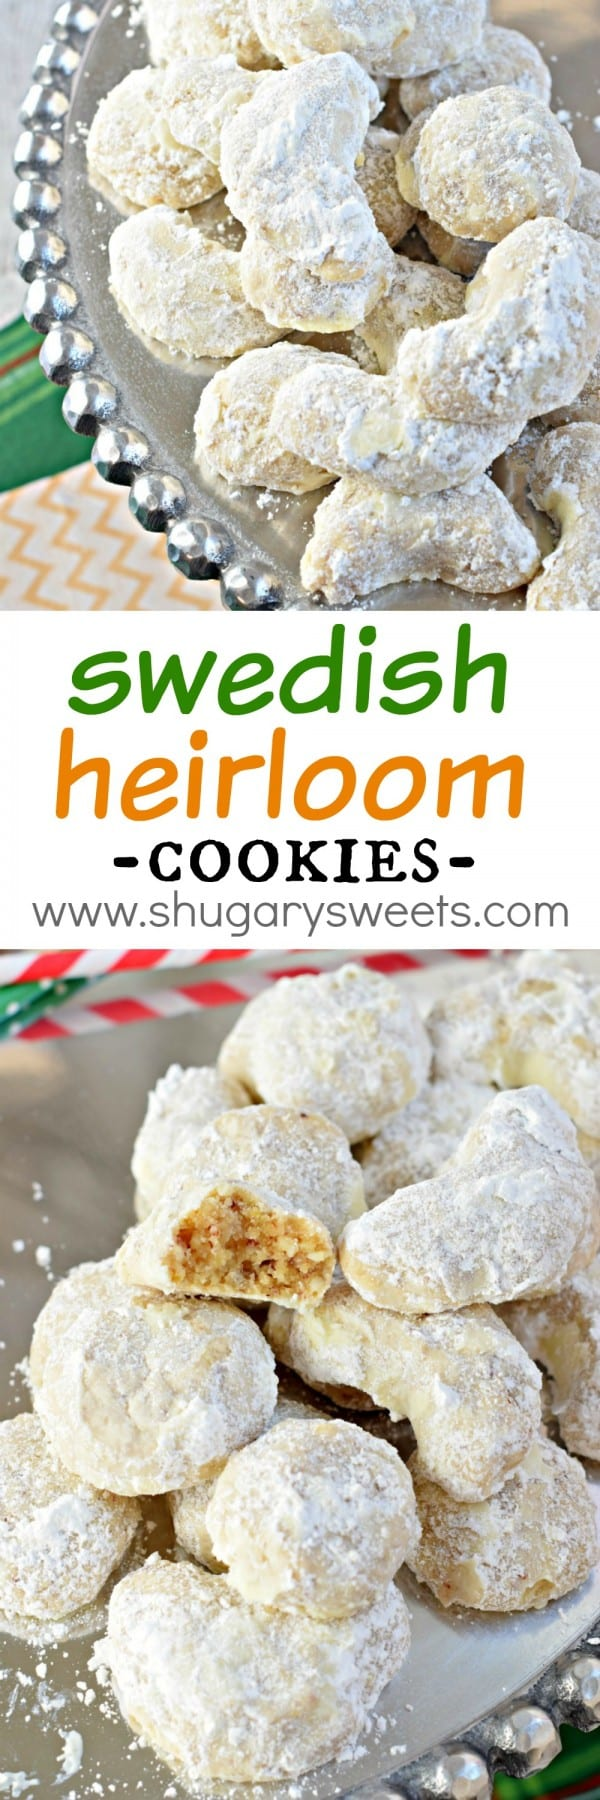 Whether you call these by Swedish Heirloom Cookies or by many of their other names (Snowballs, Mexican Wedding Cookies, Russian Tea Cakes), you just need to try this cookie recipe. The buttery almond flavor melts in your mouth!